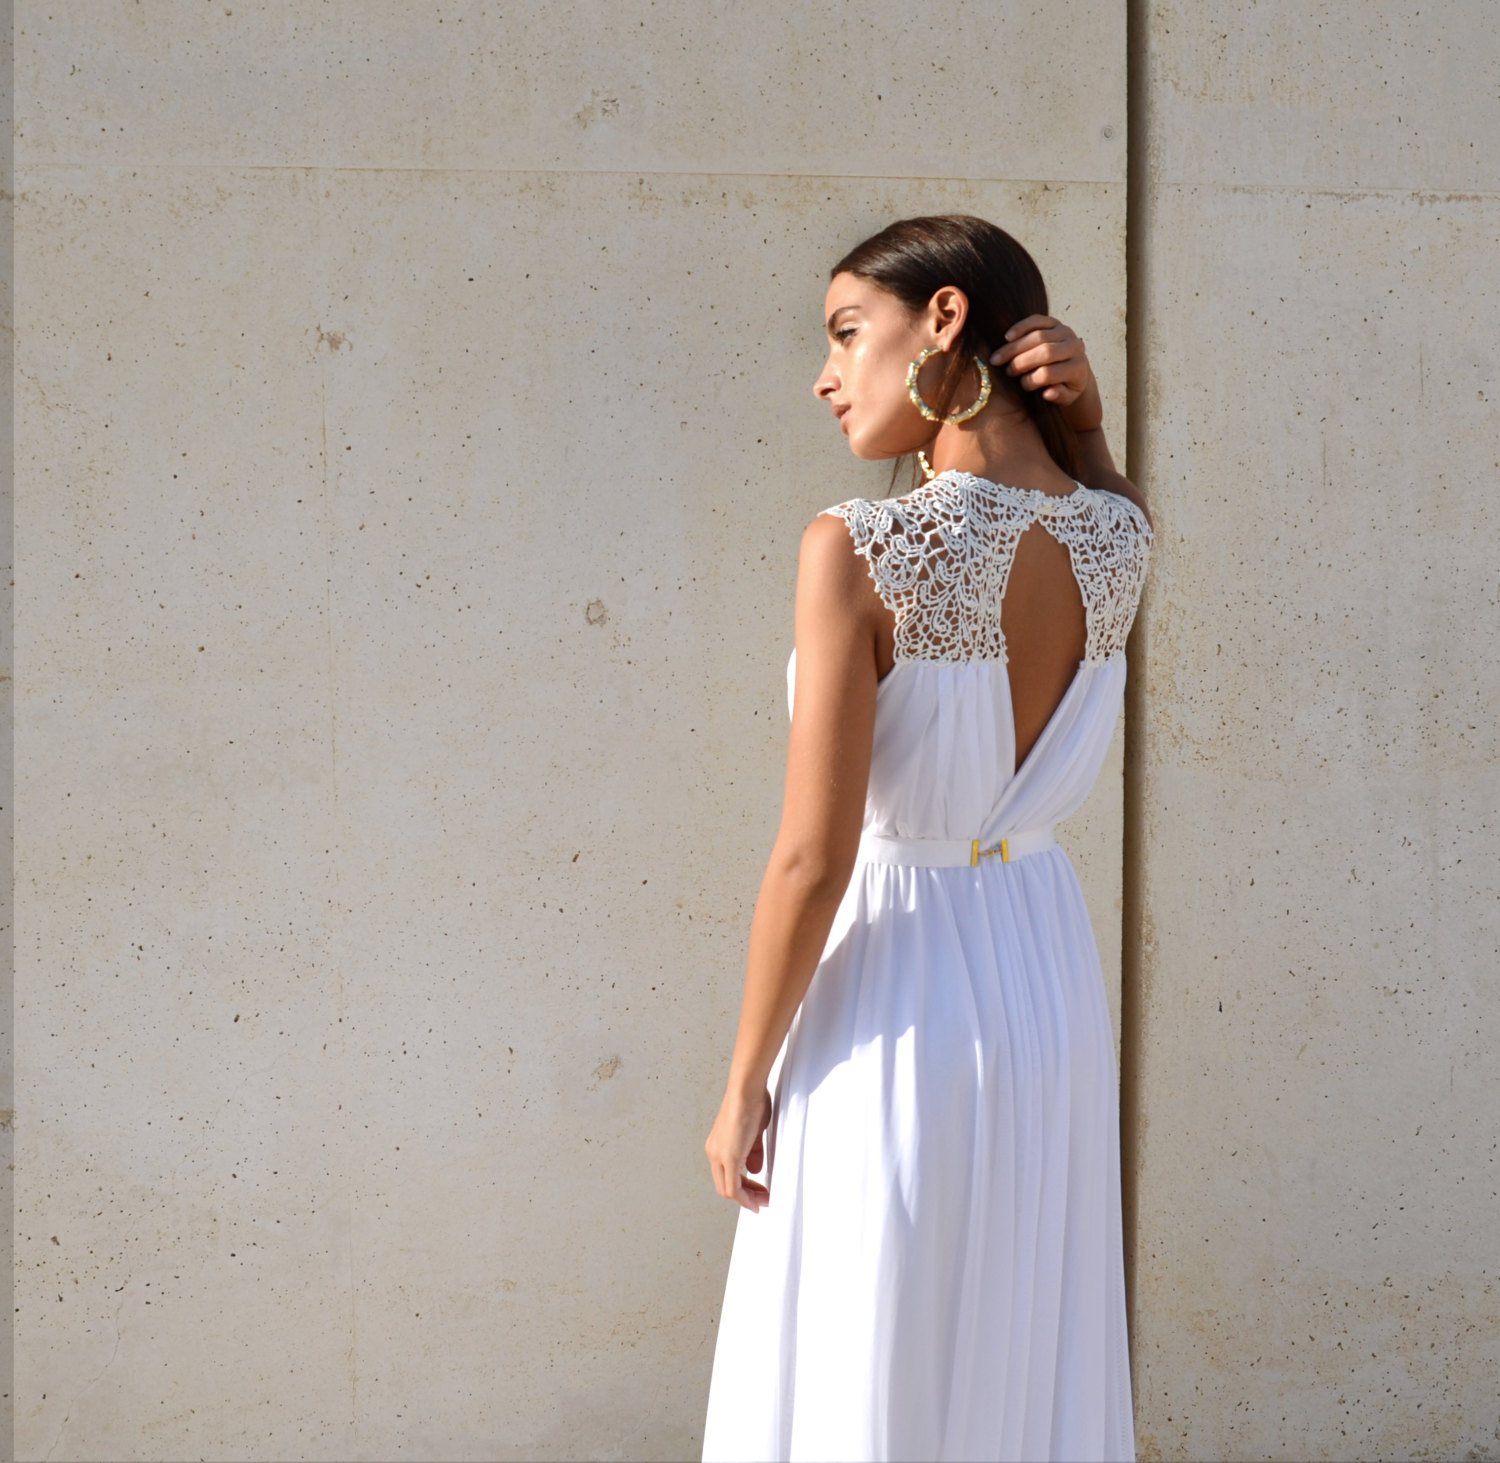 embroidered dress top | dresses boho weddings https://emmalinebride.com/bridal-gowns/dresses-boho-weddings/